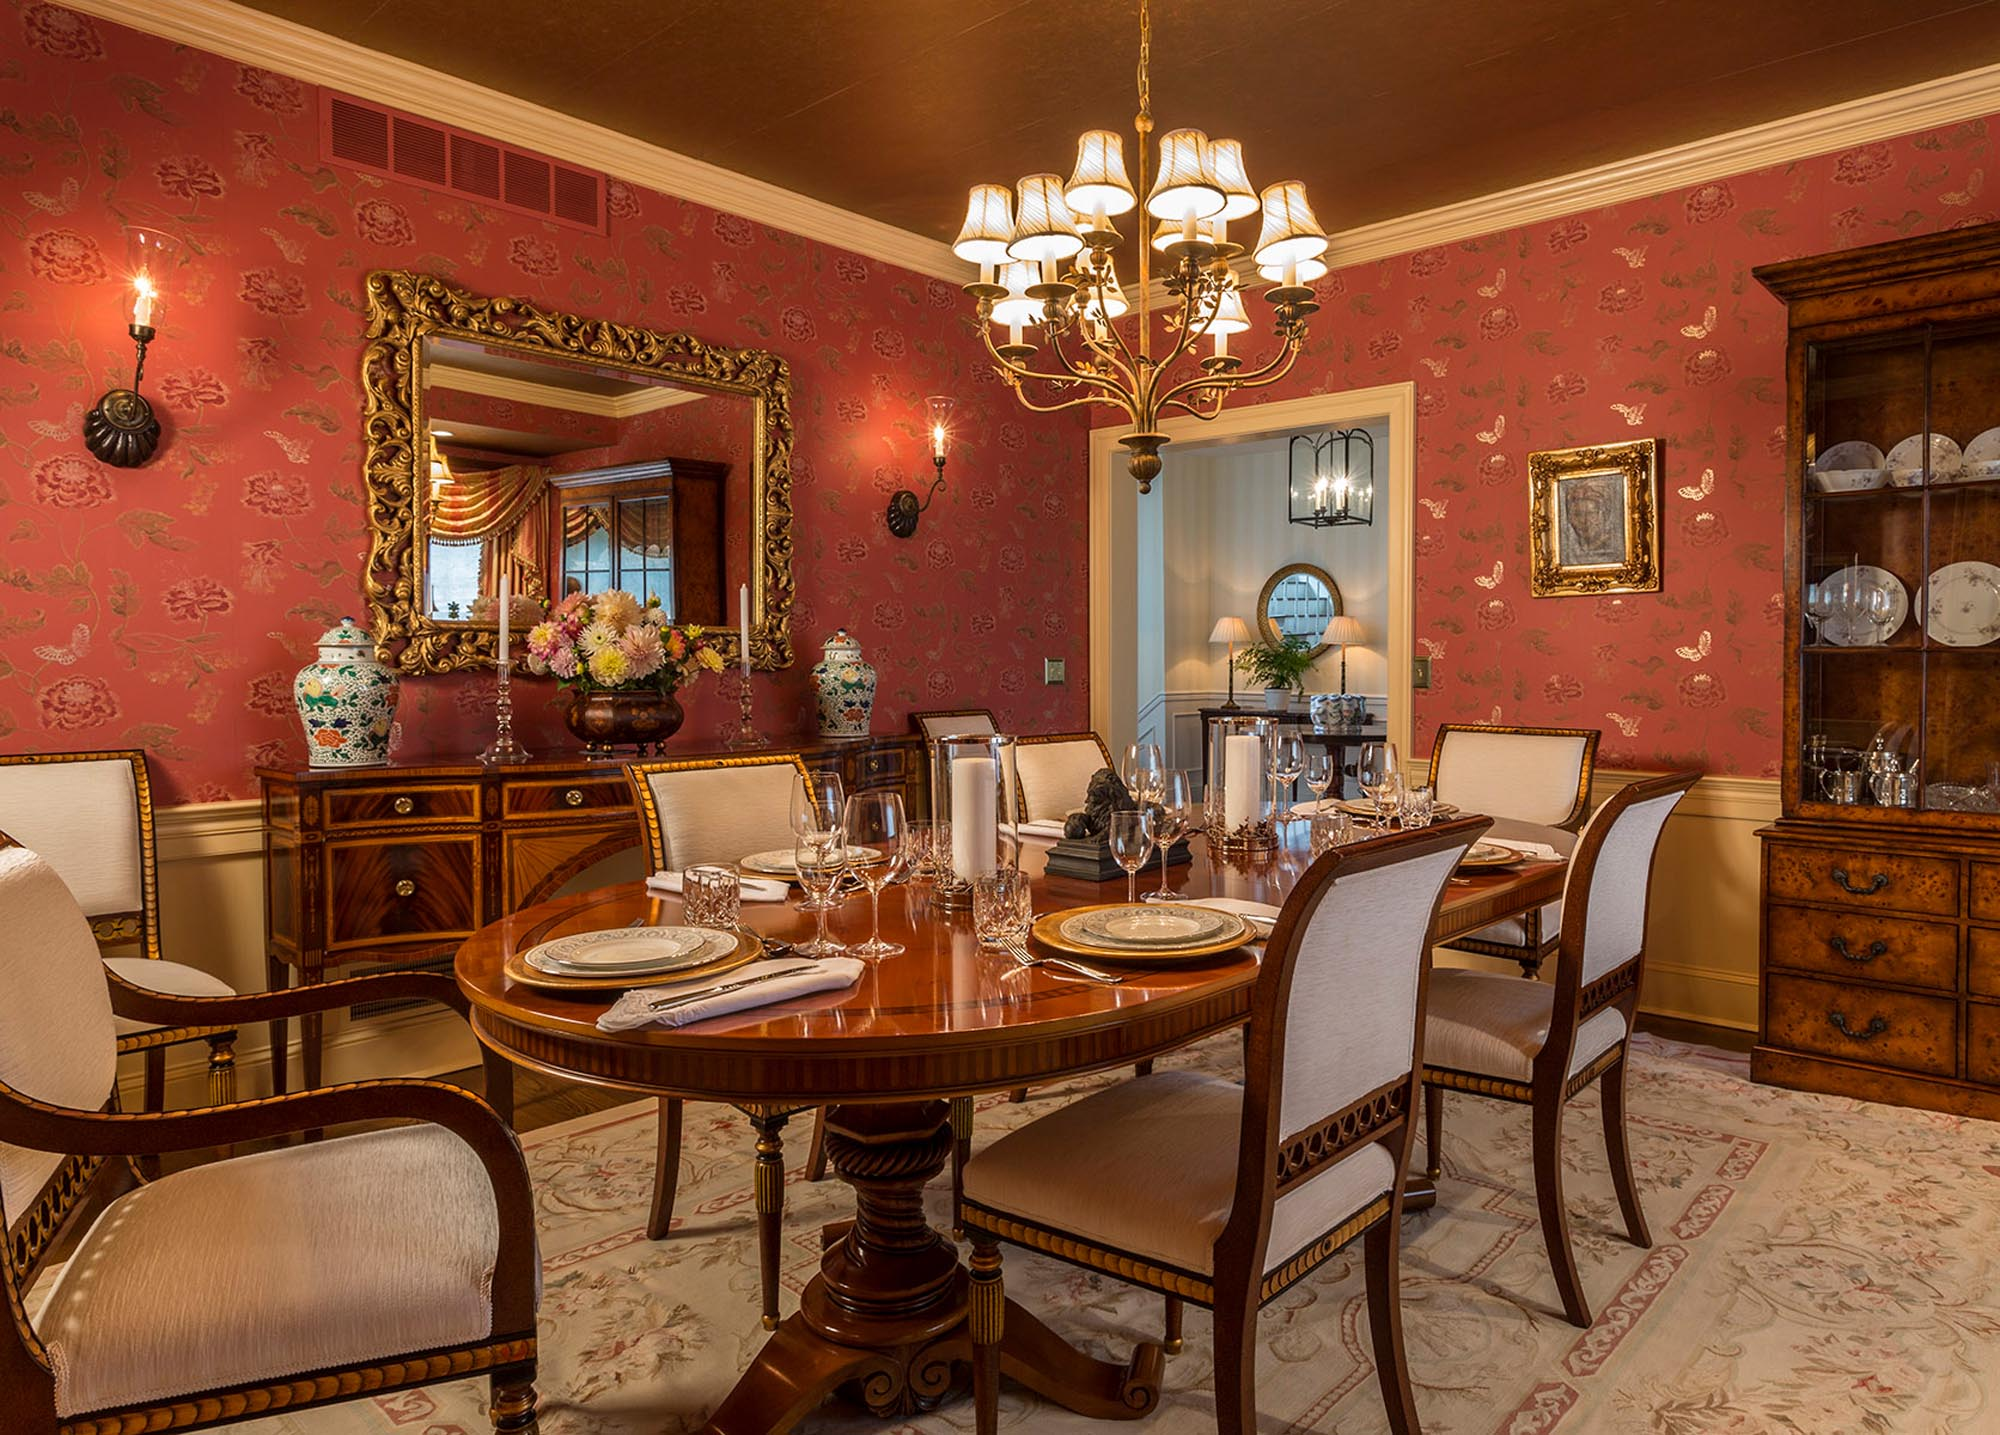 Warm dining area with wooden table for six and vintage chandelier